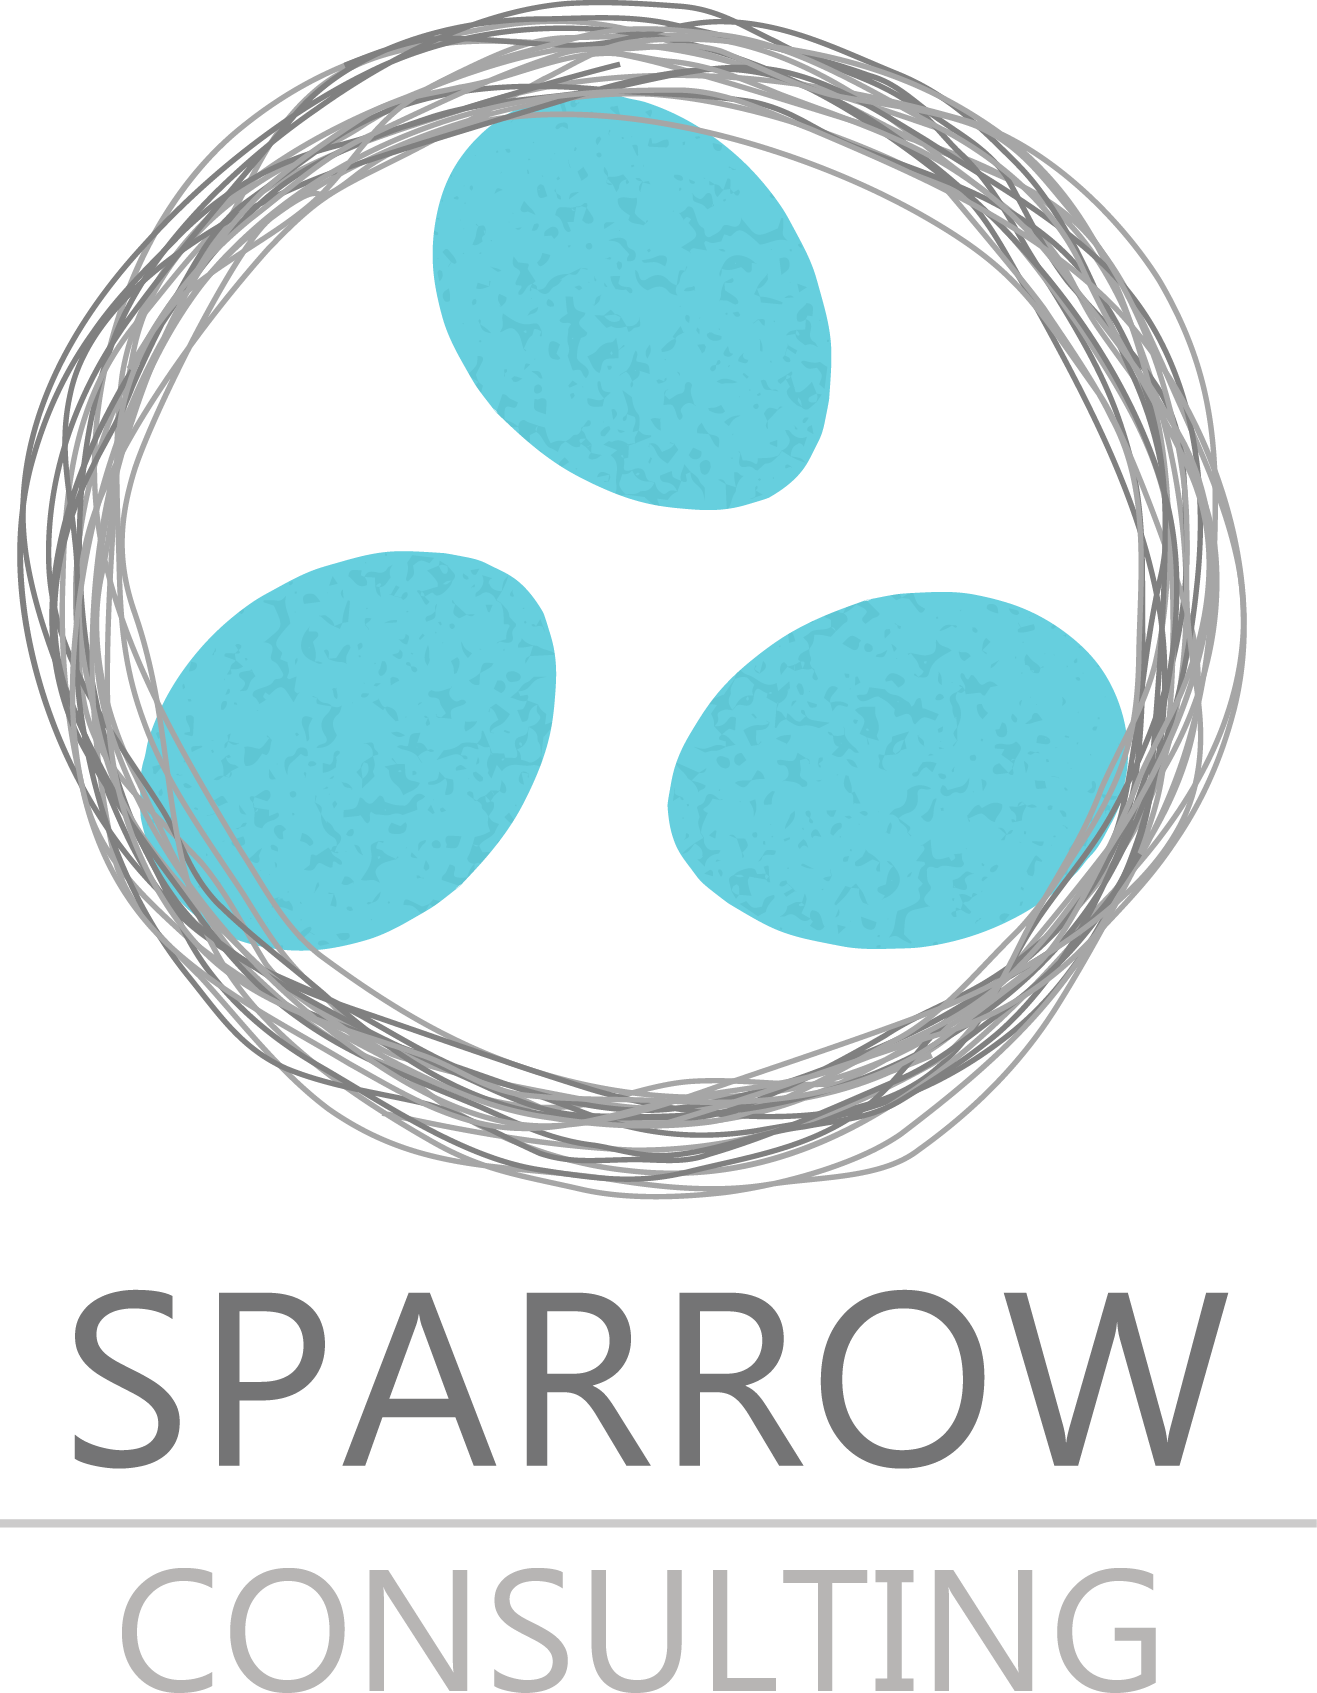 Sparrow Consulting, LLC